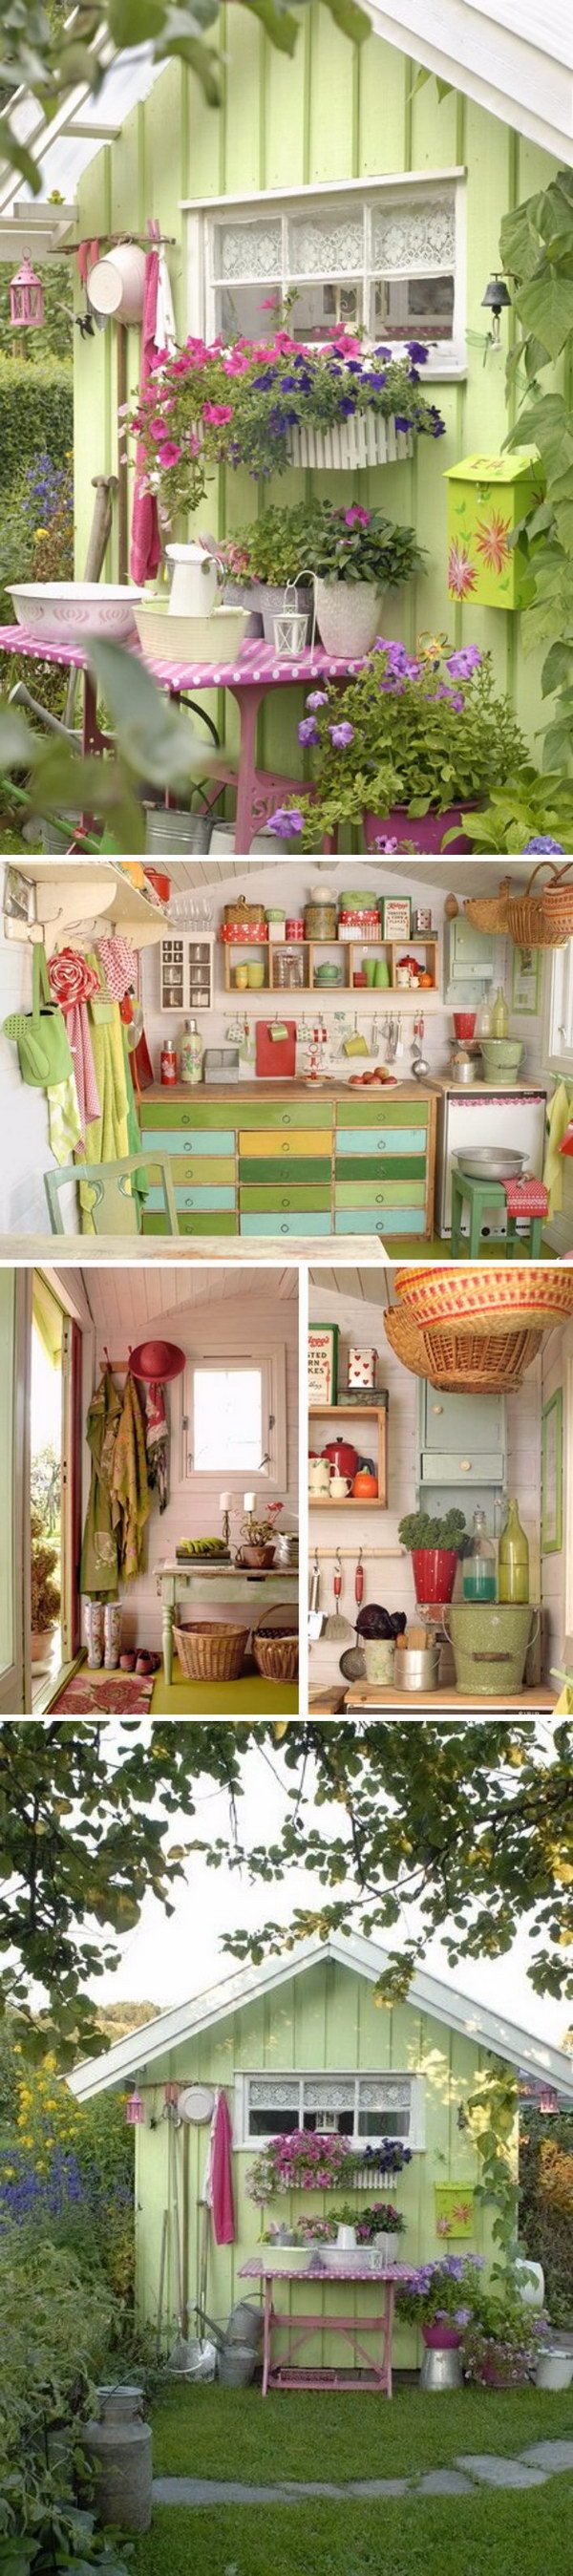 Sweet Little Green Potting Shed.